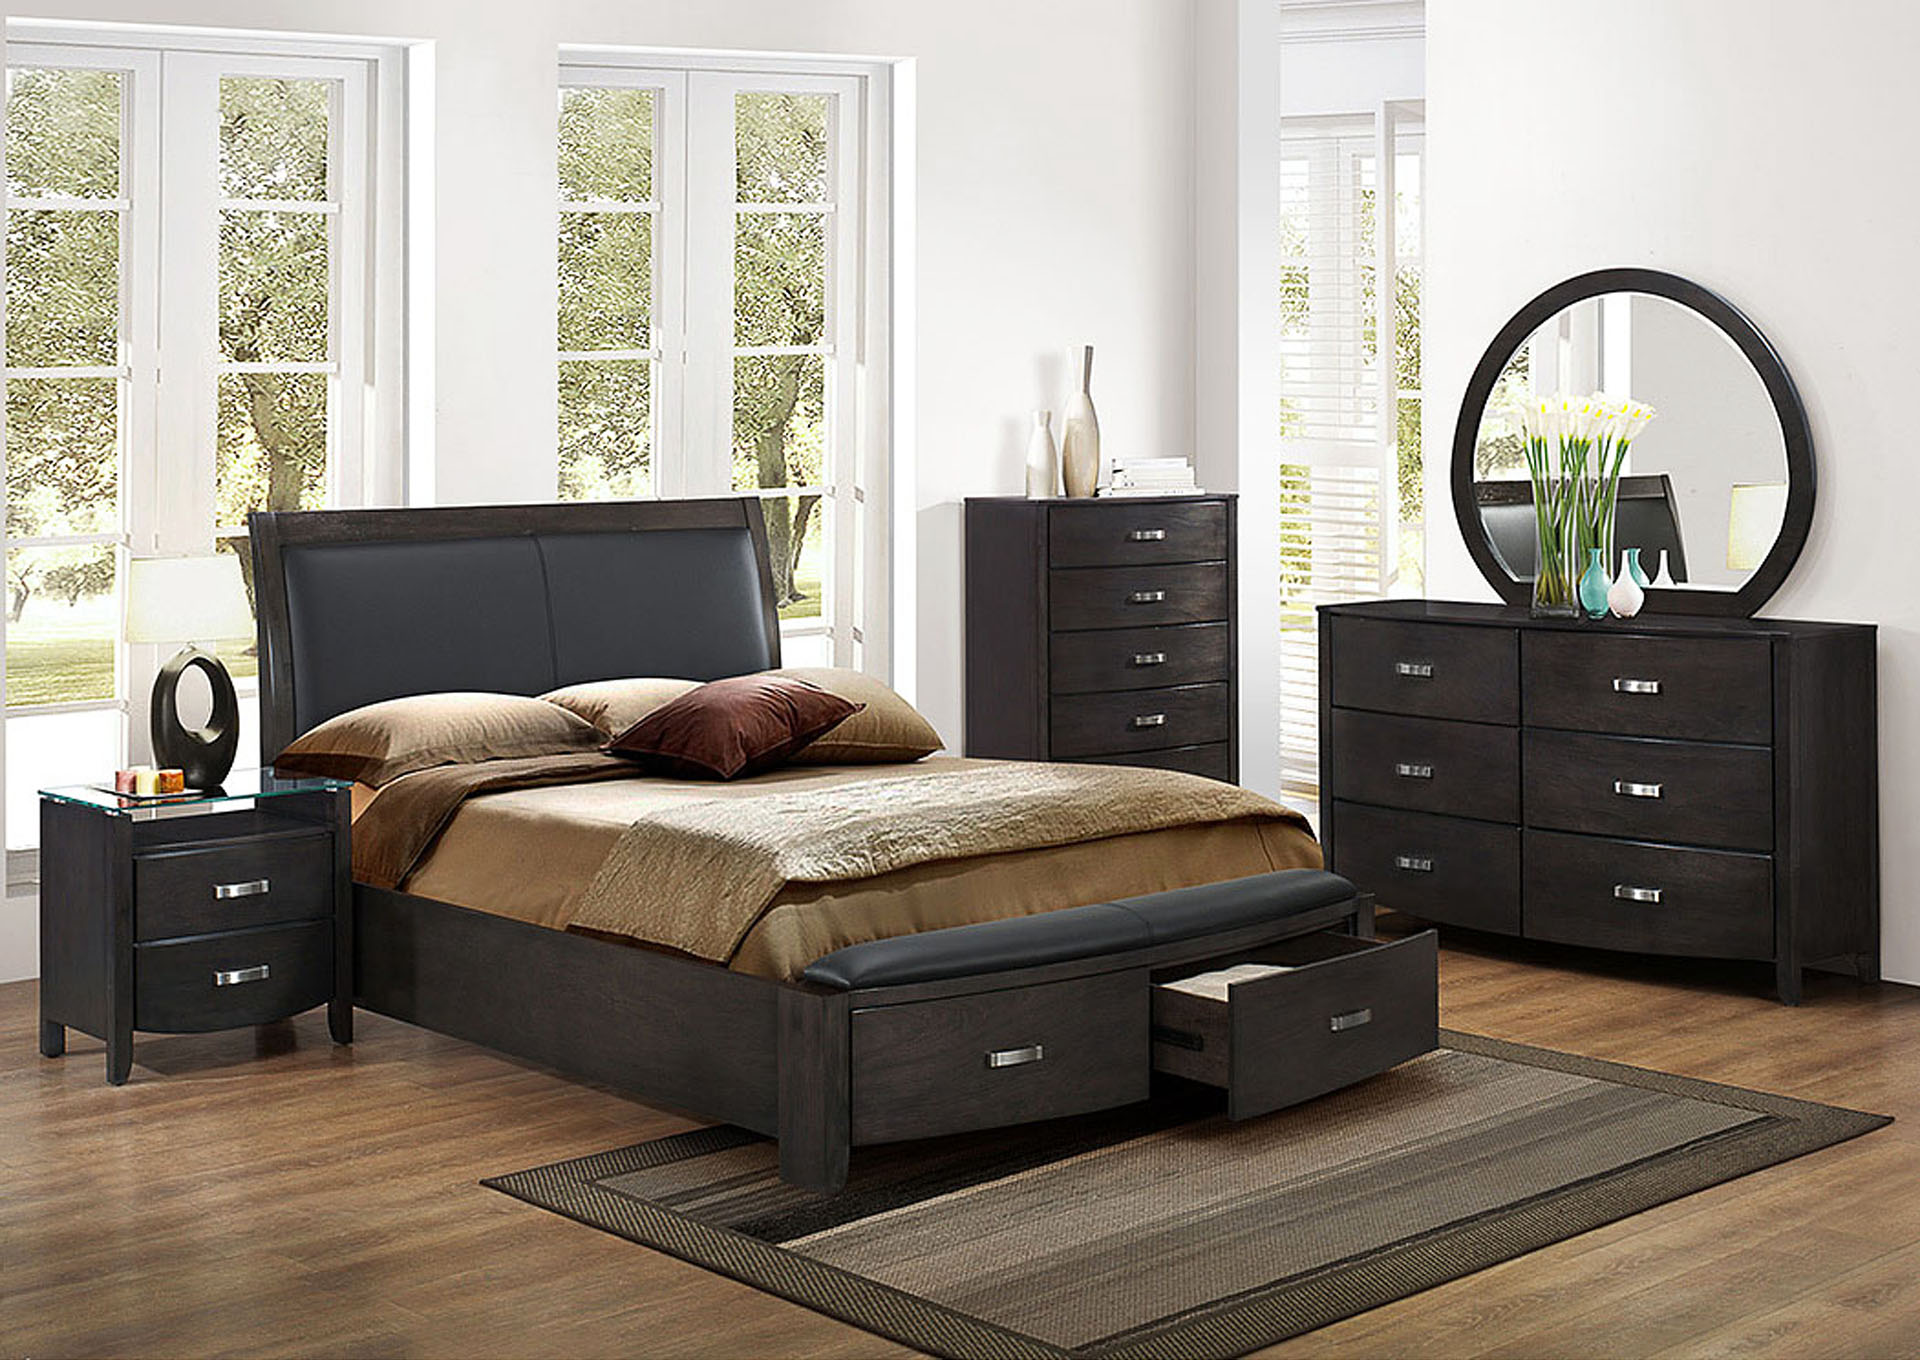 Queen Bed w/Storage,Homelegance